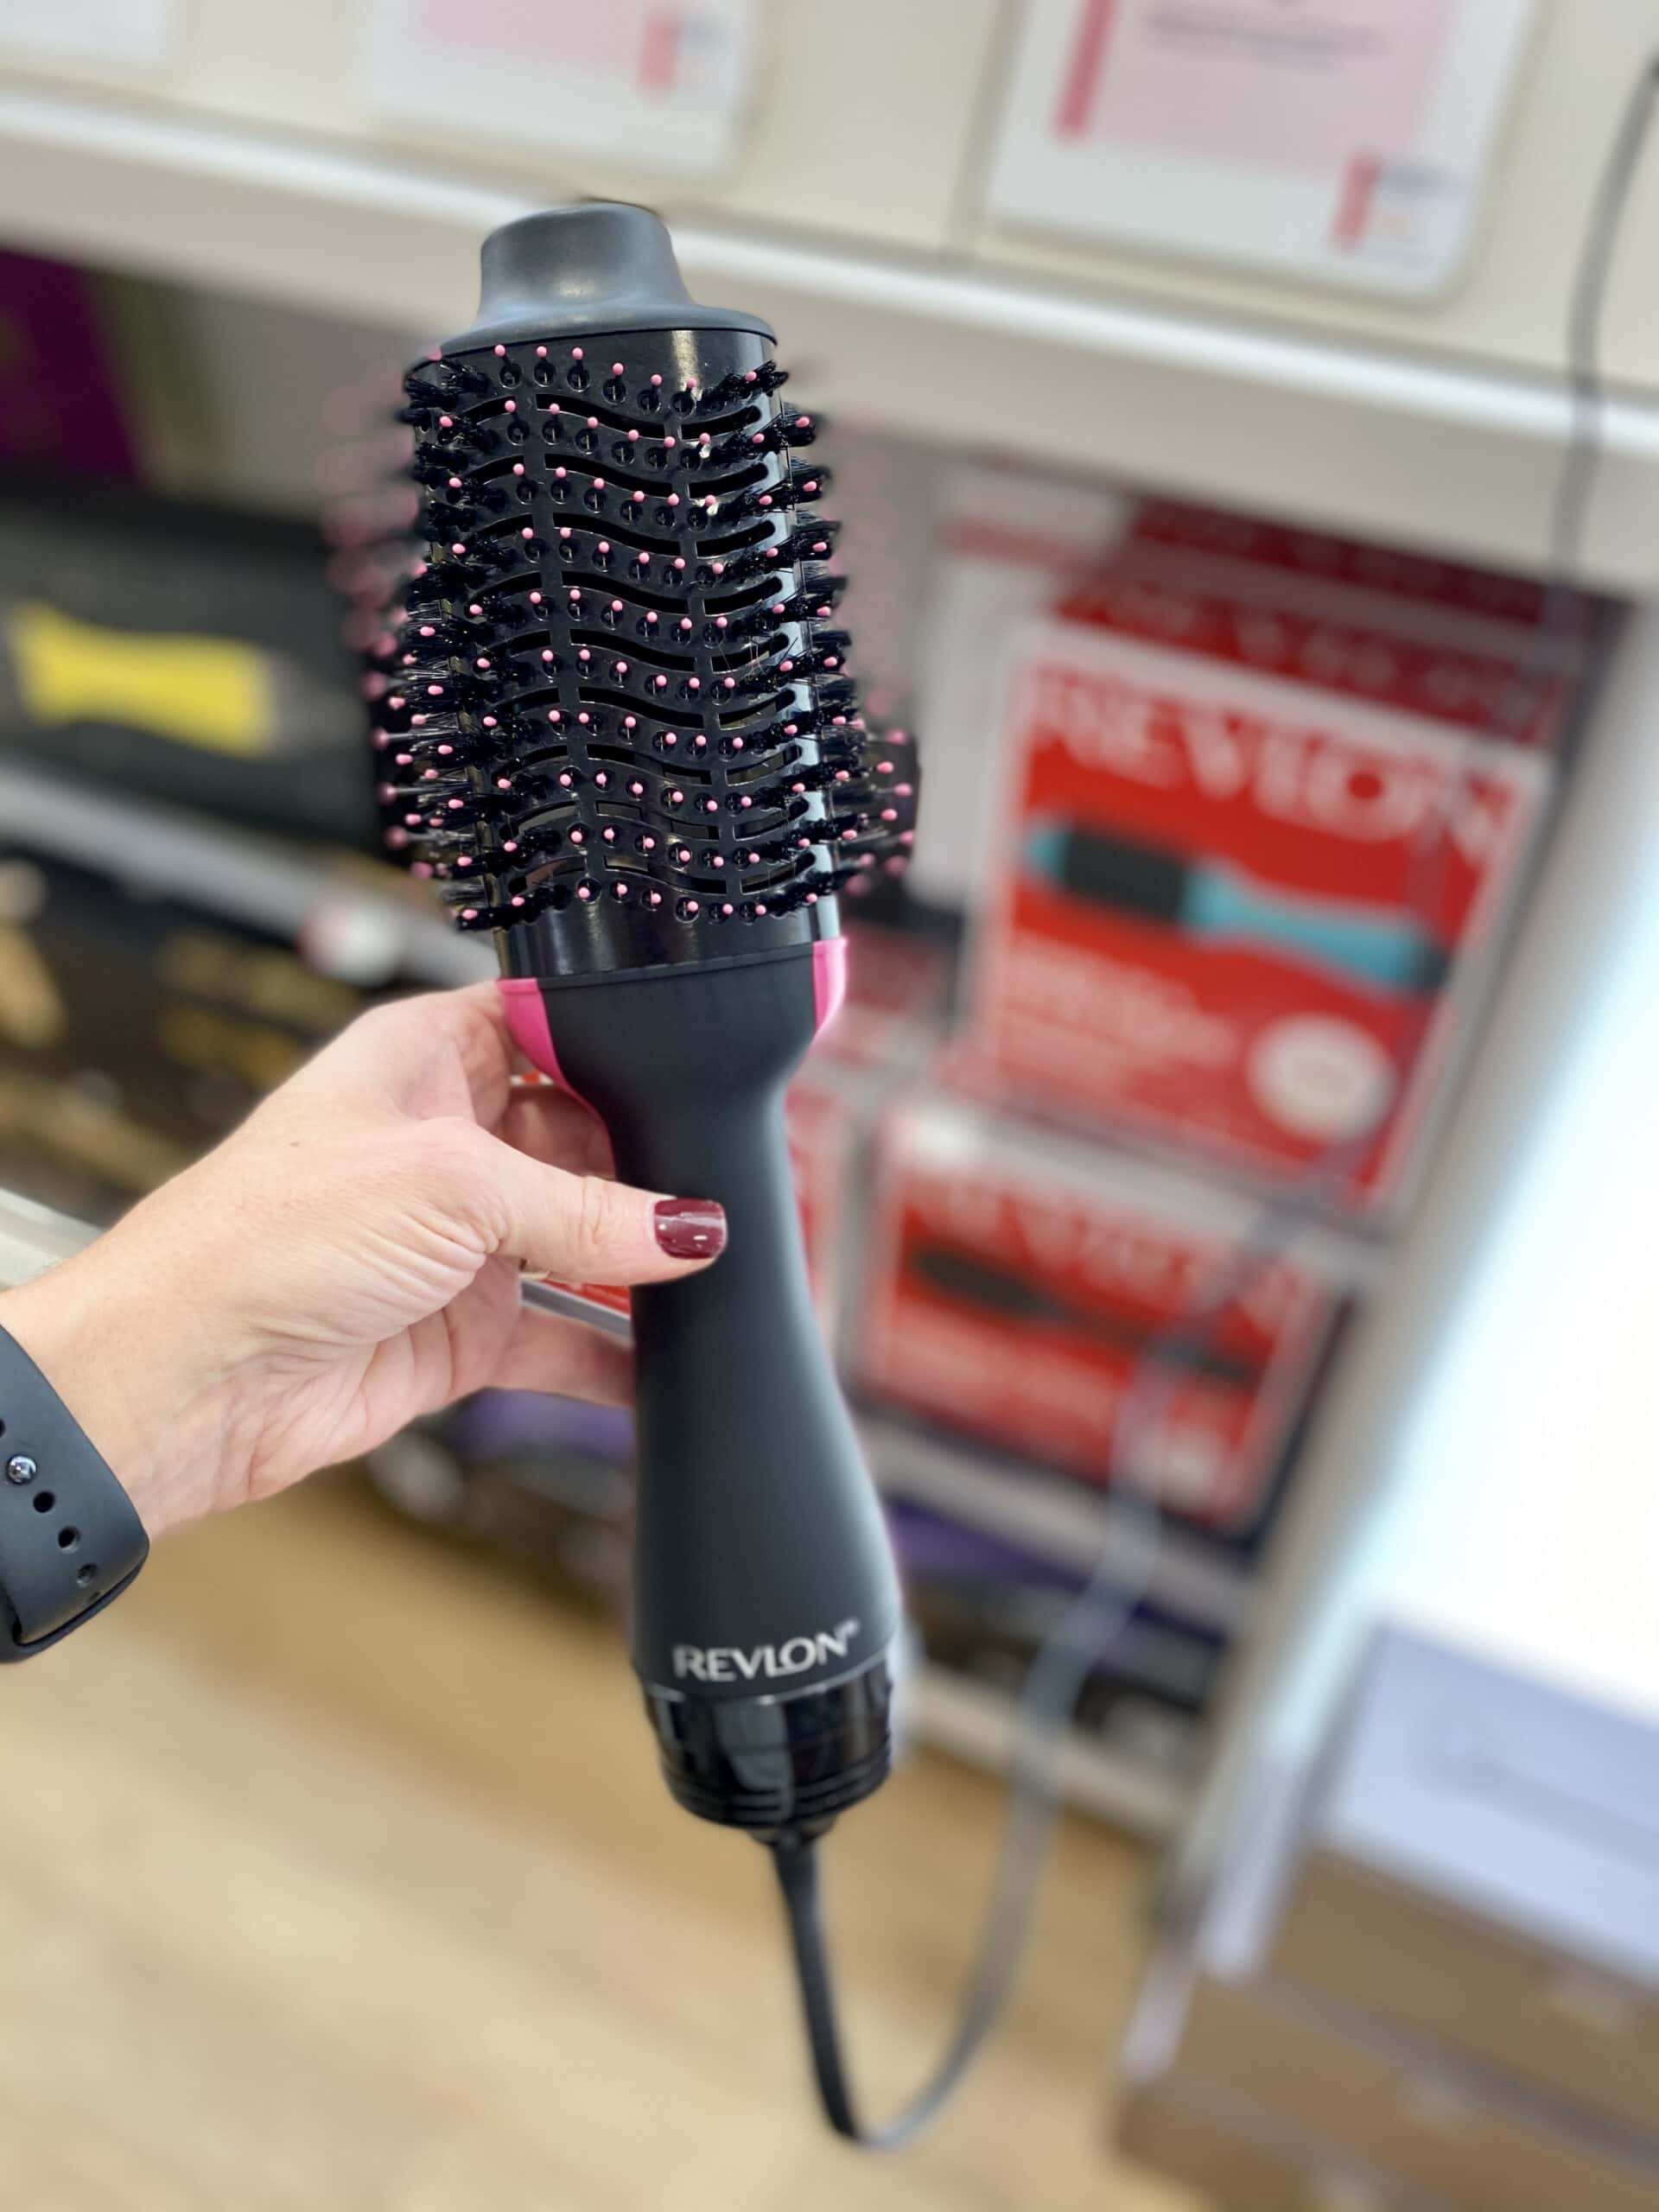 revlon one step hair dryer